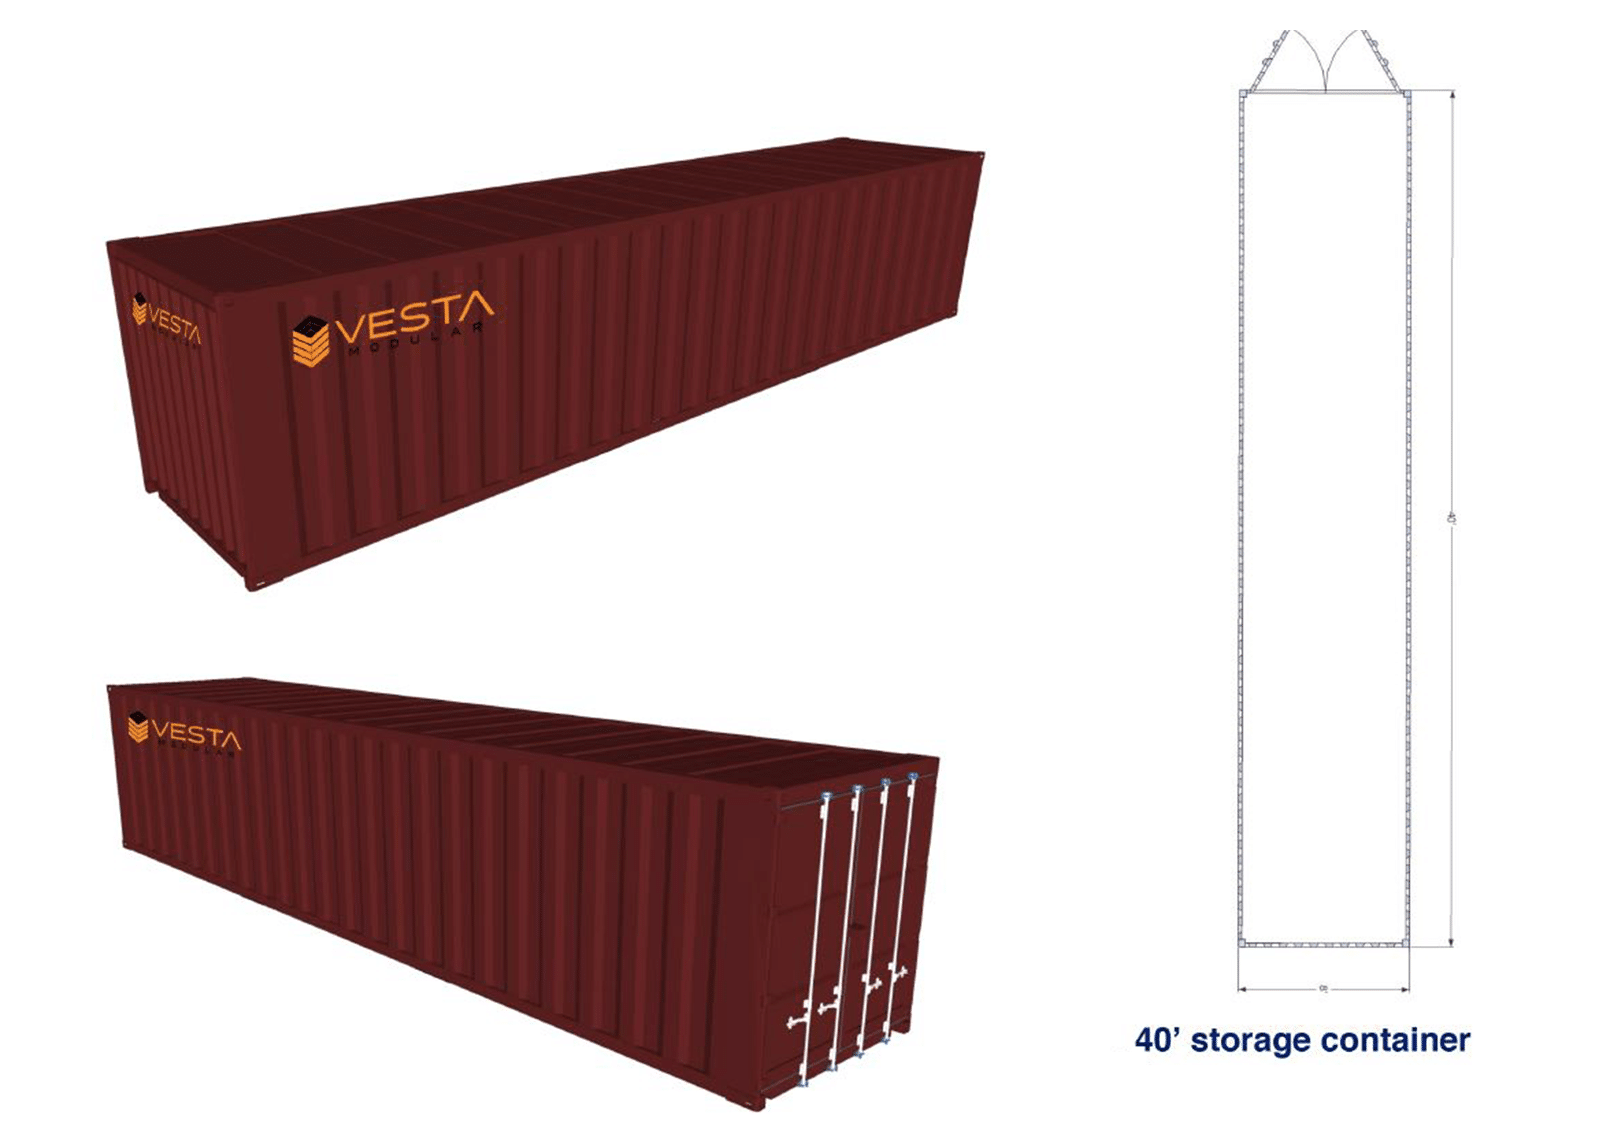 8' x 40' Shipping Container Floor Plan